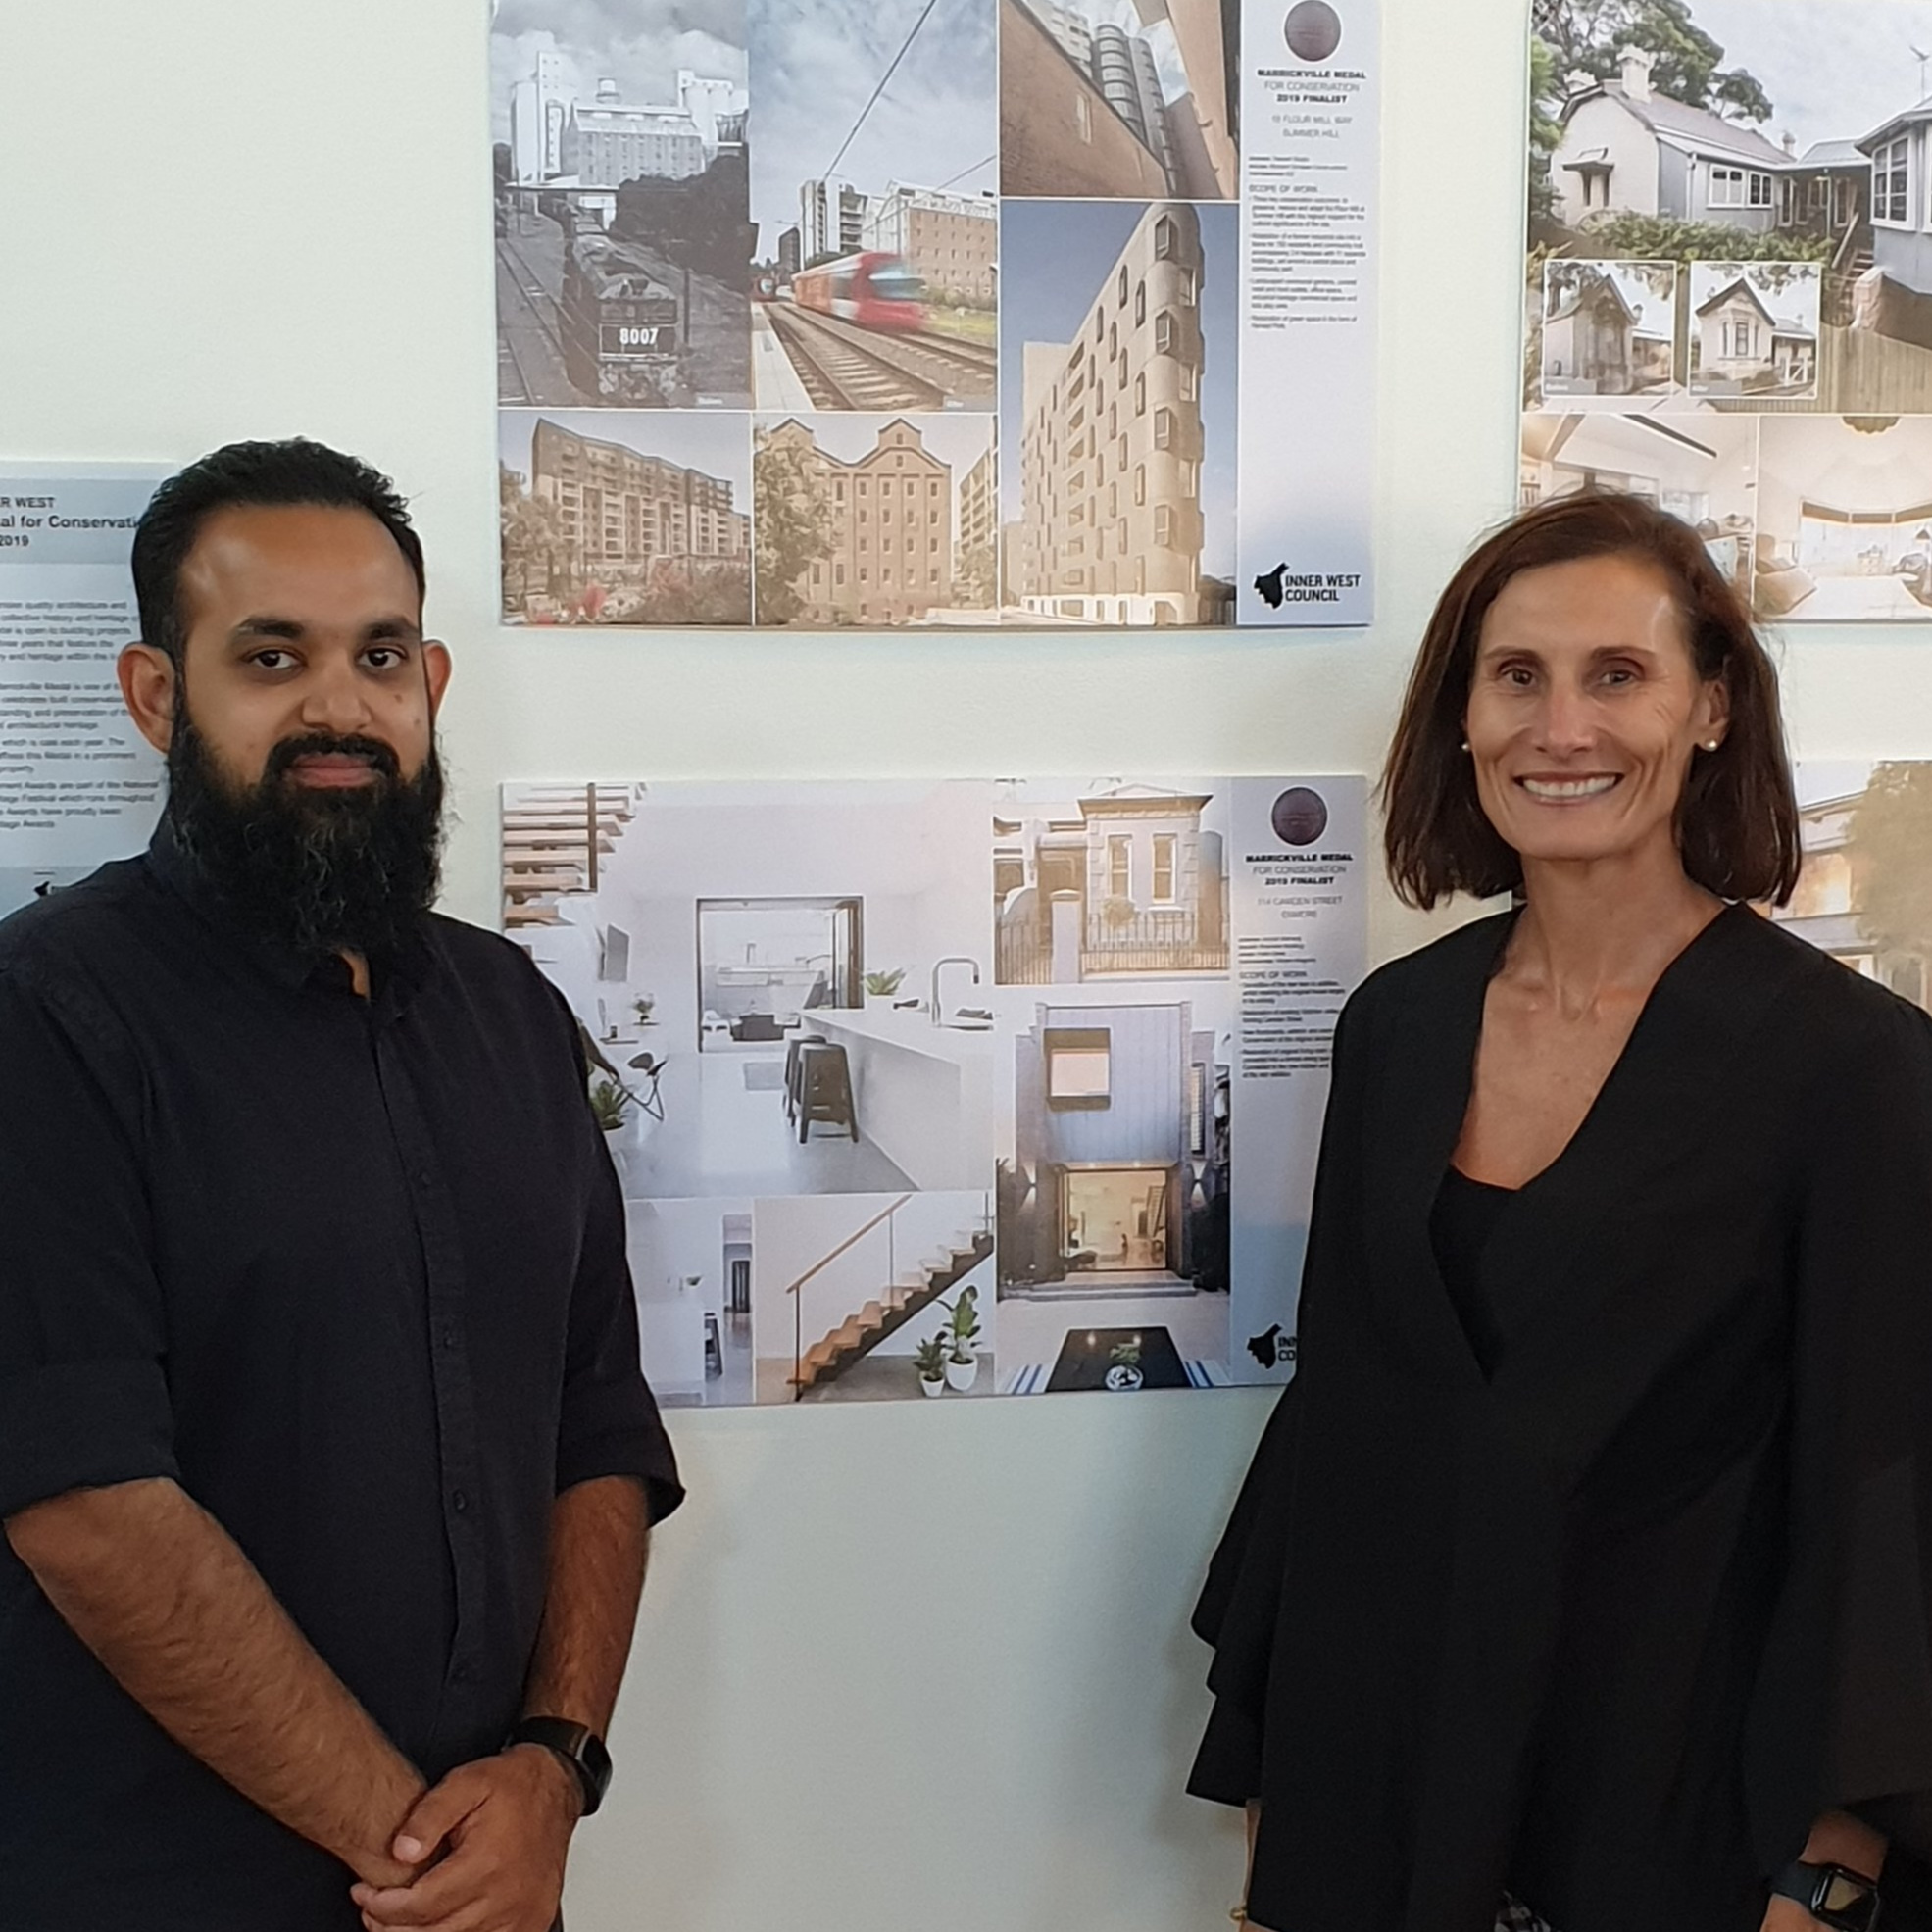 2019 Inner West Council / Marrickville Medal for Conservation / Finalist